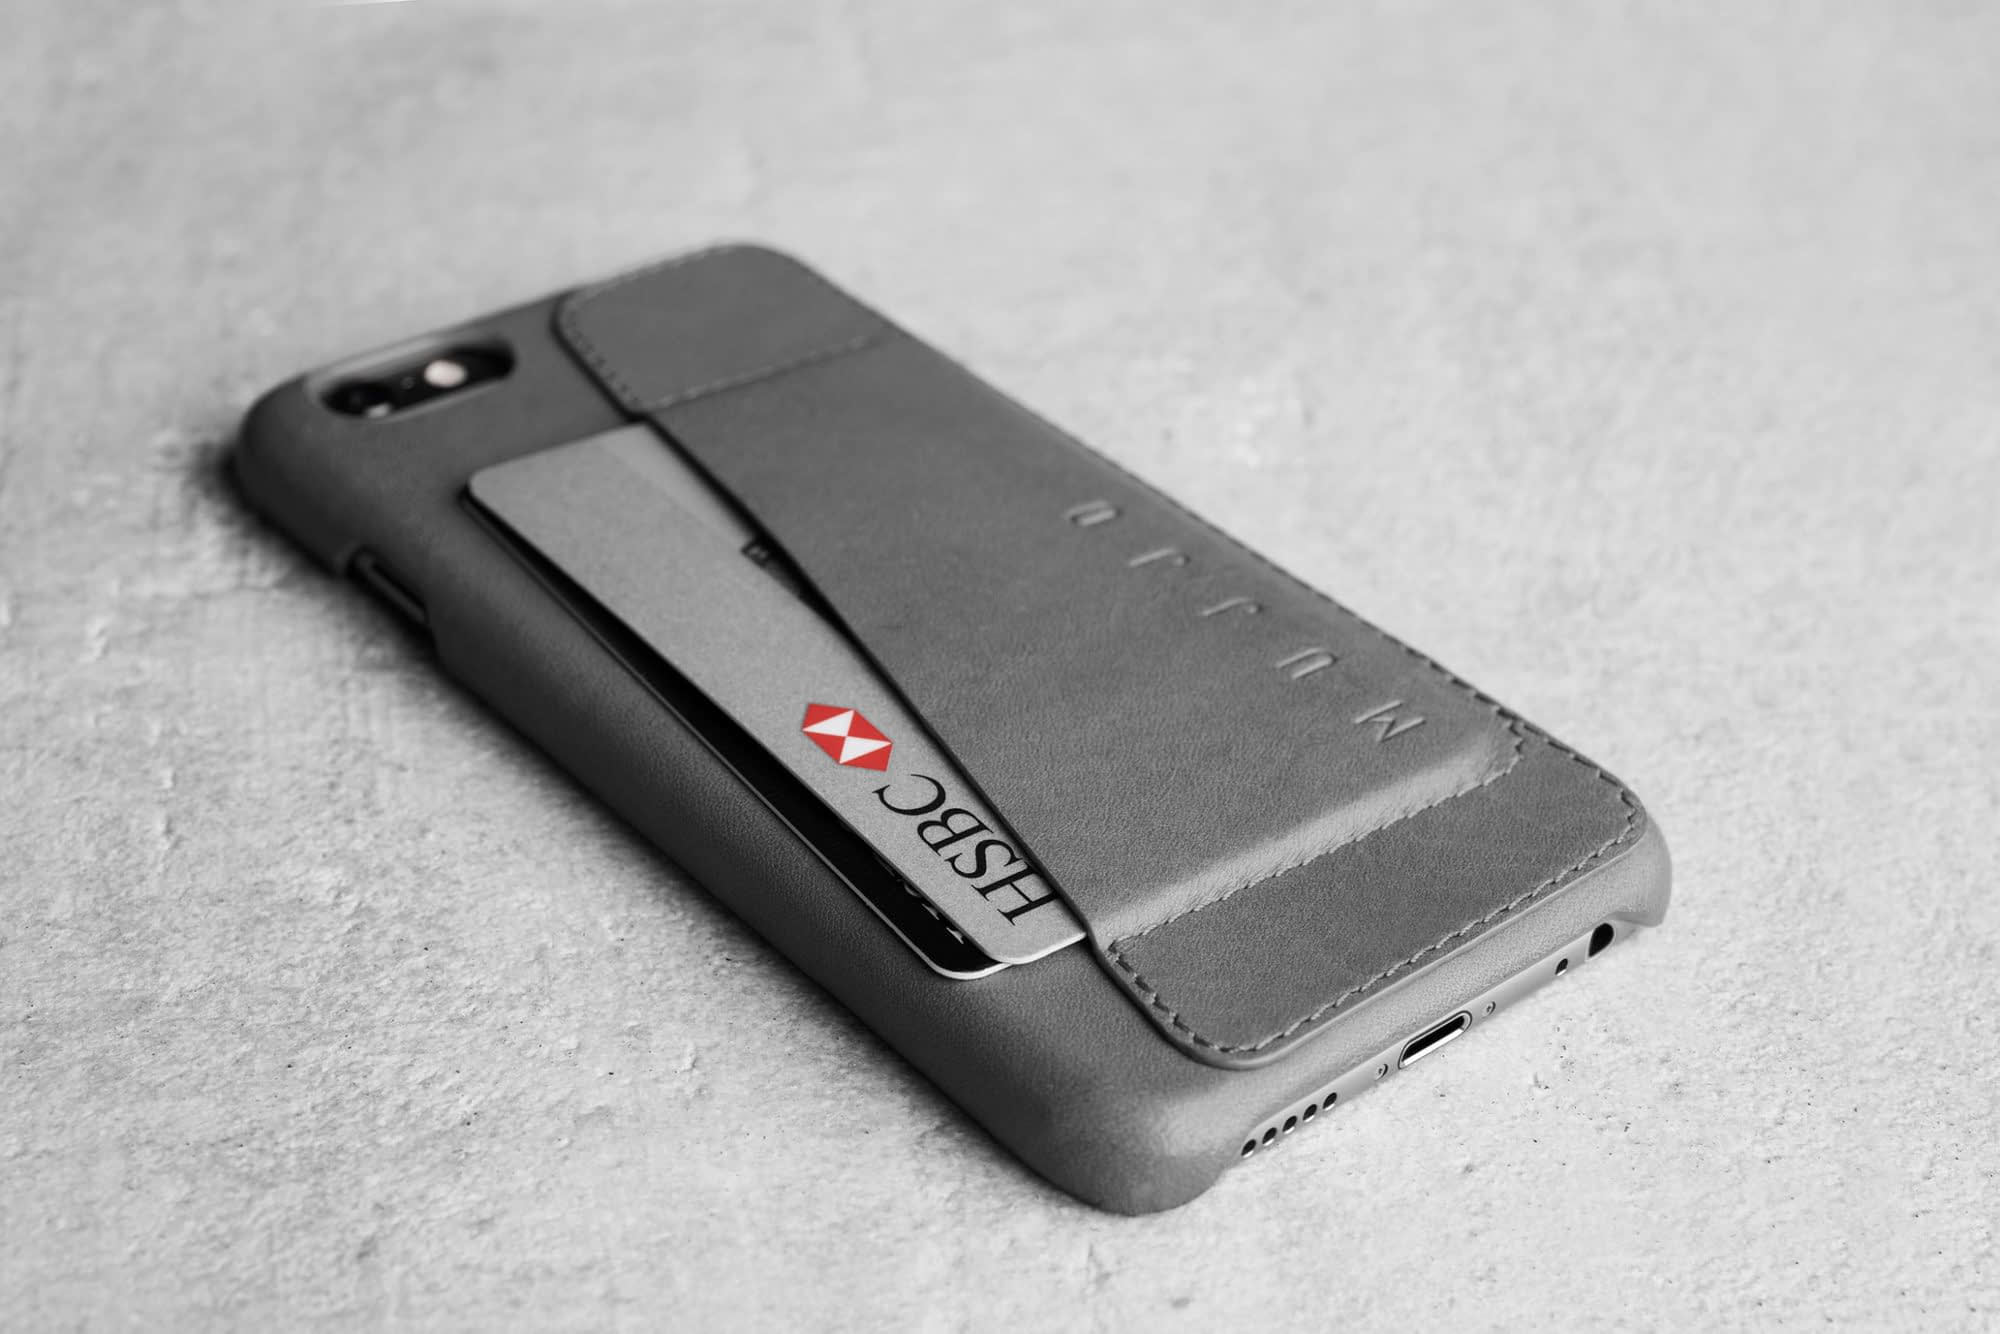 Leather Wallet Case 80° for iPhone 6 Gray Lifestyle 504